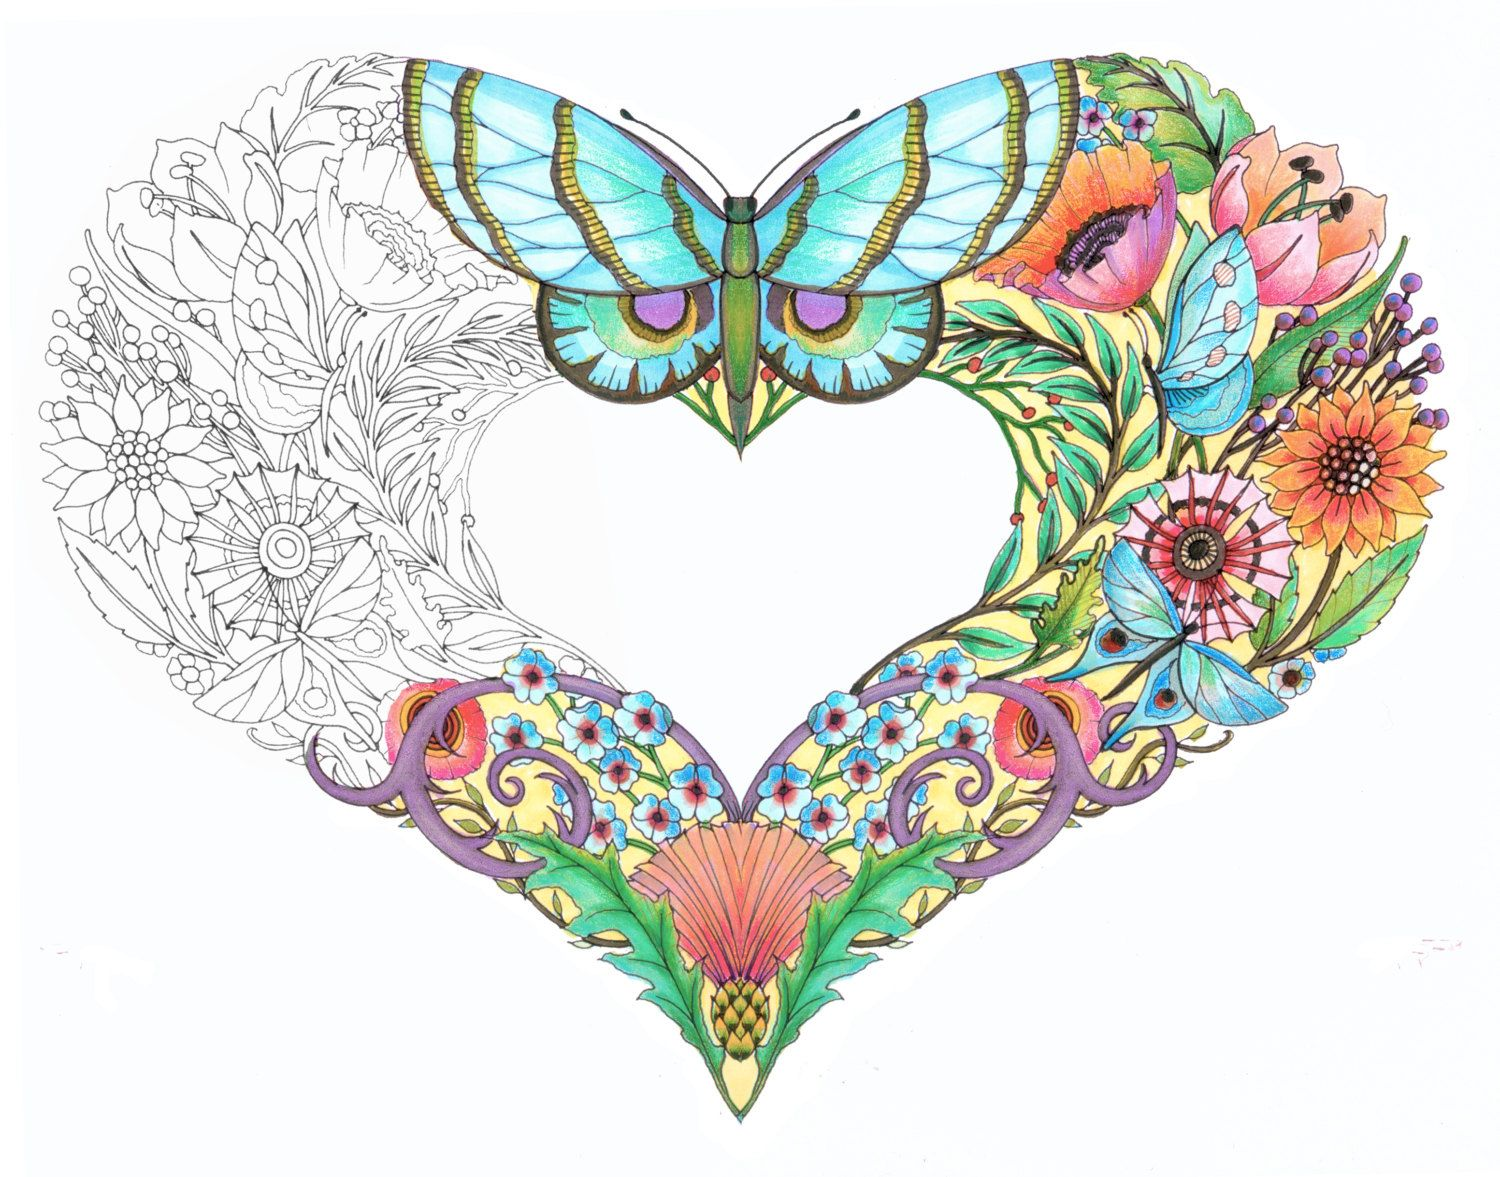 Butterfly and hearts coloring pages - Open Hearts Coloring Pages For Adults Set Of 10